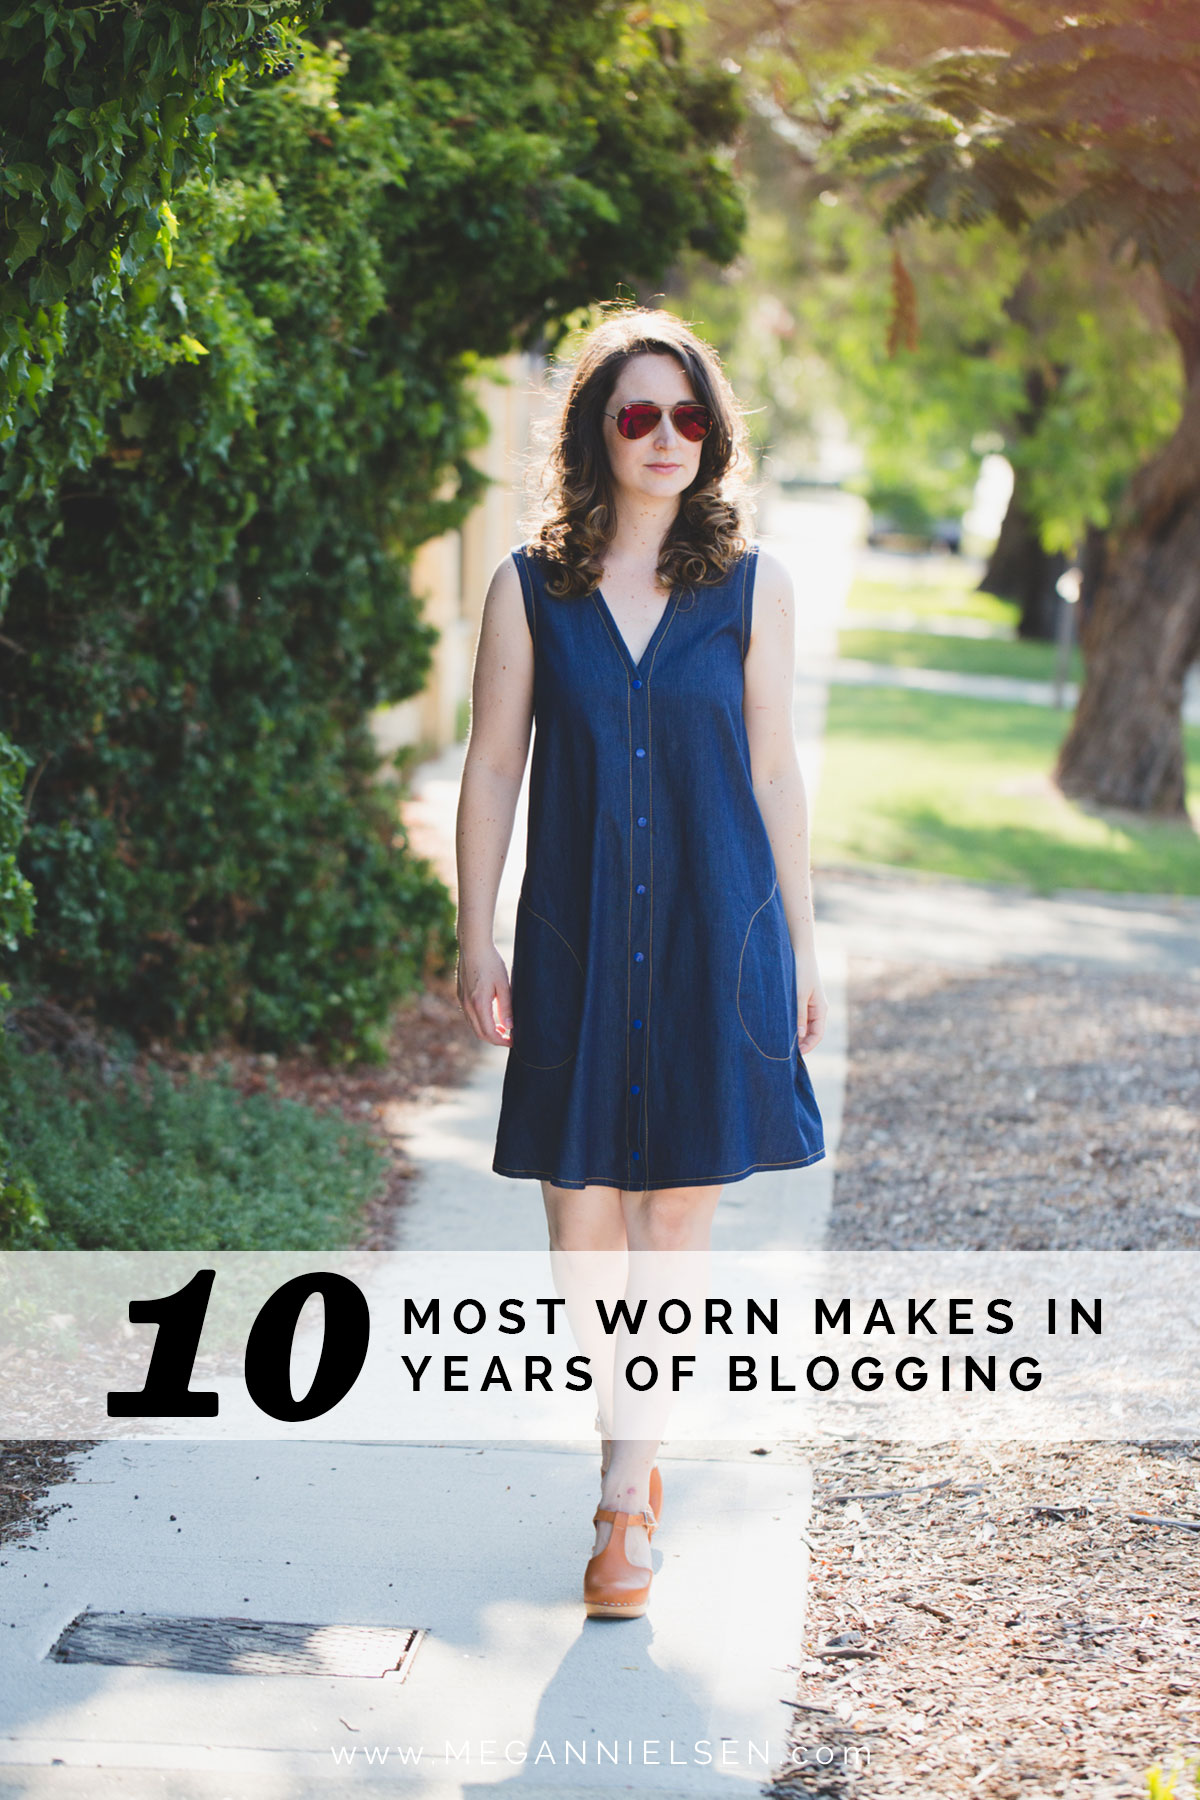 Megan Nielsen's 10 most worn makes in 10 years of sewing blogging